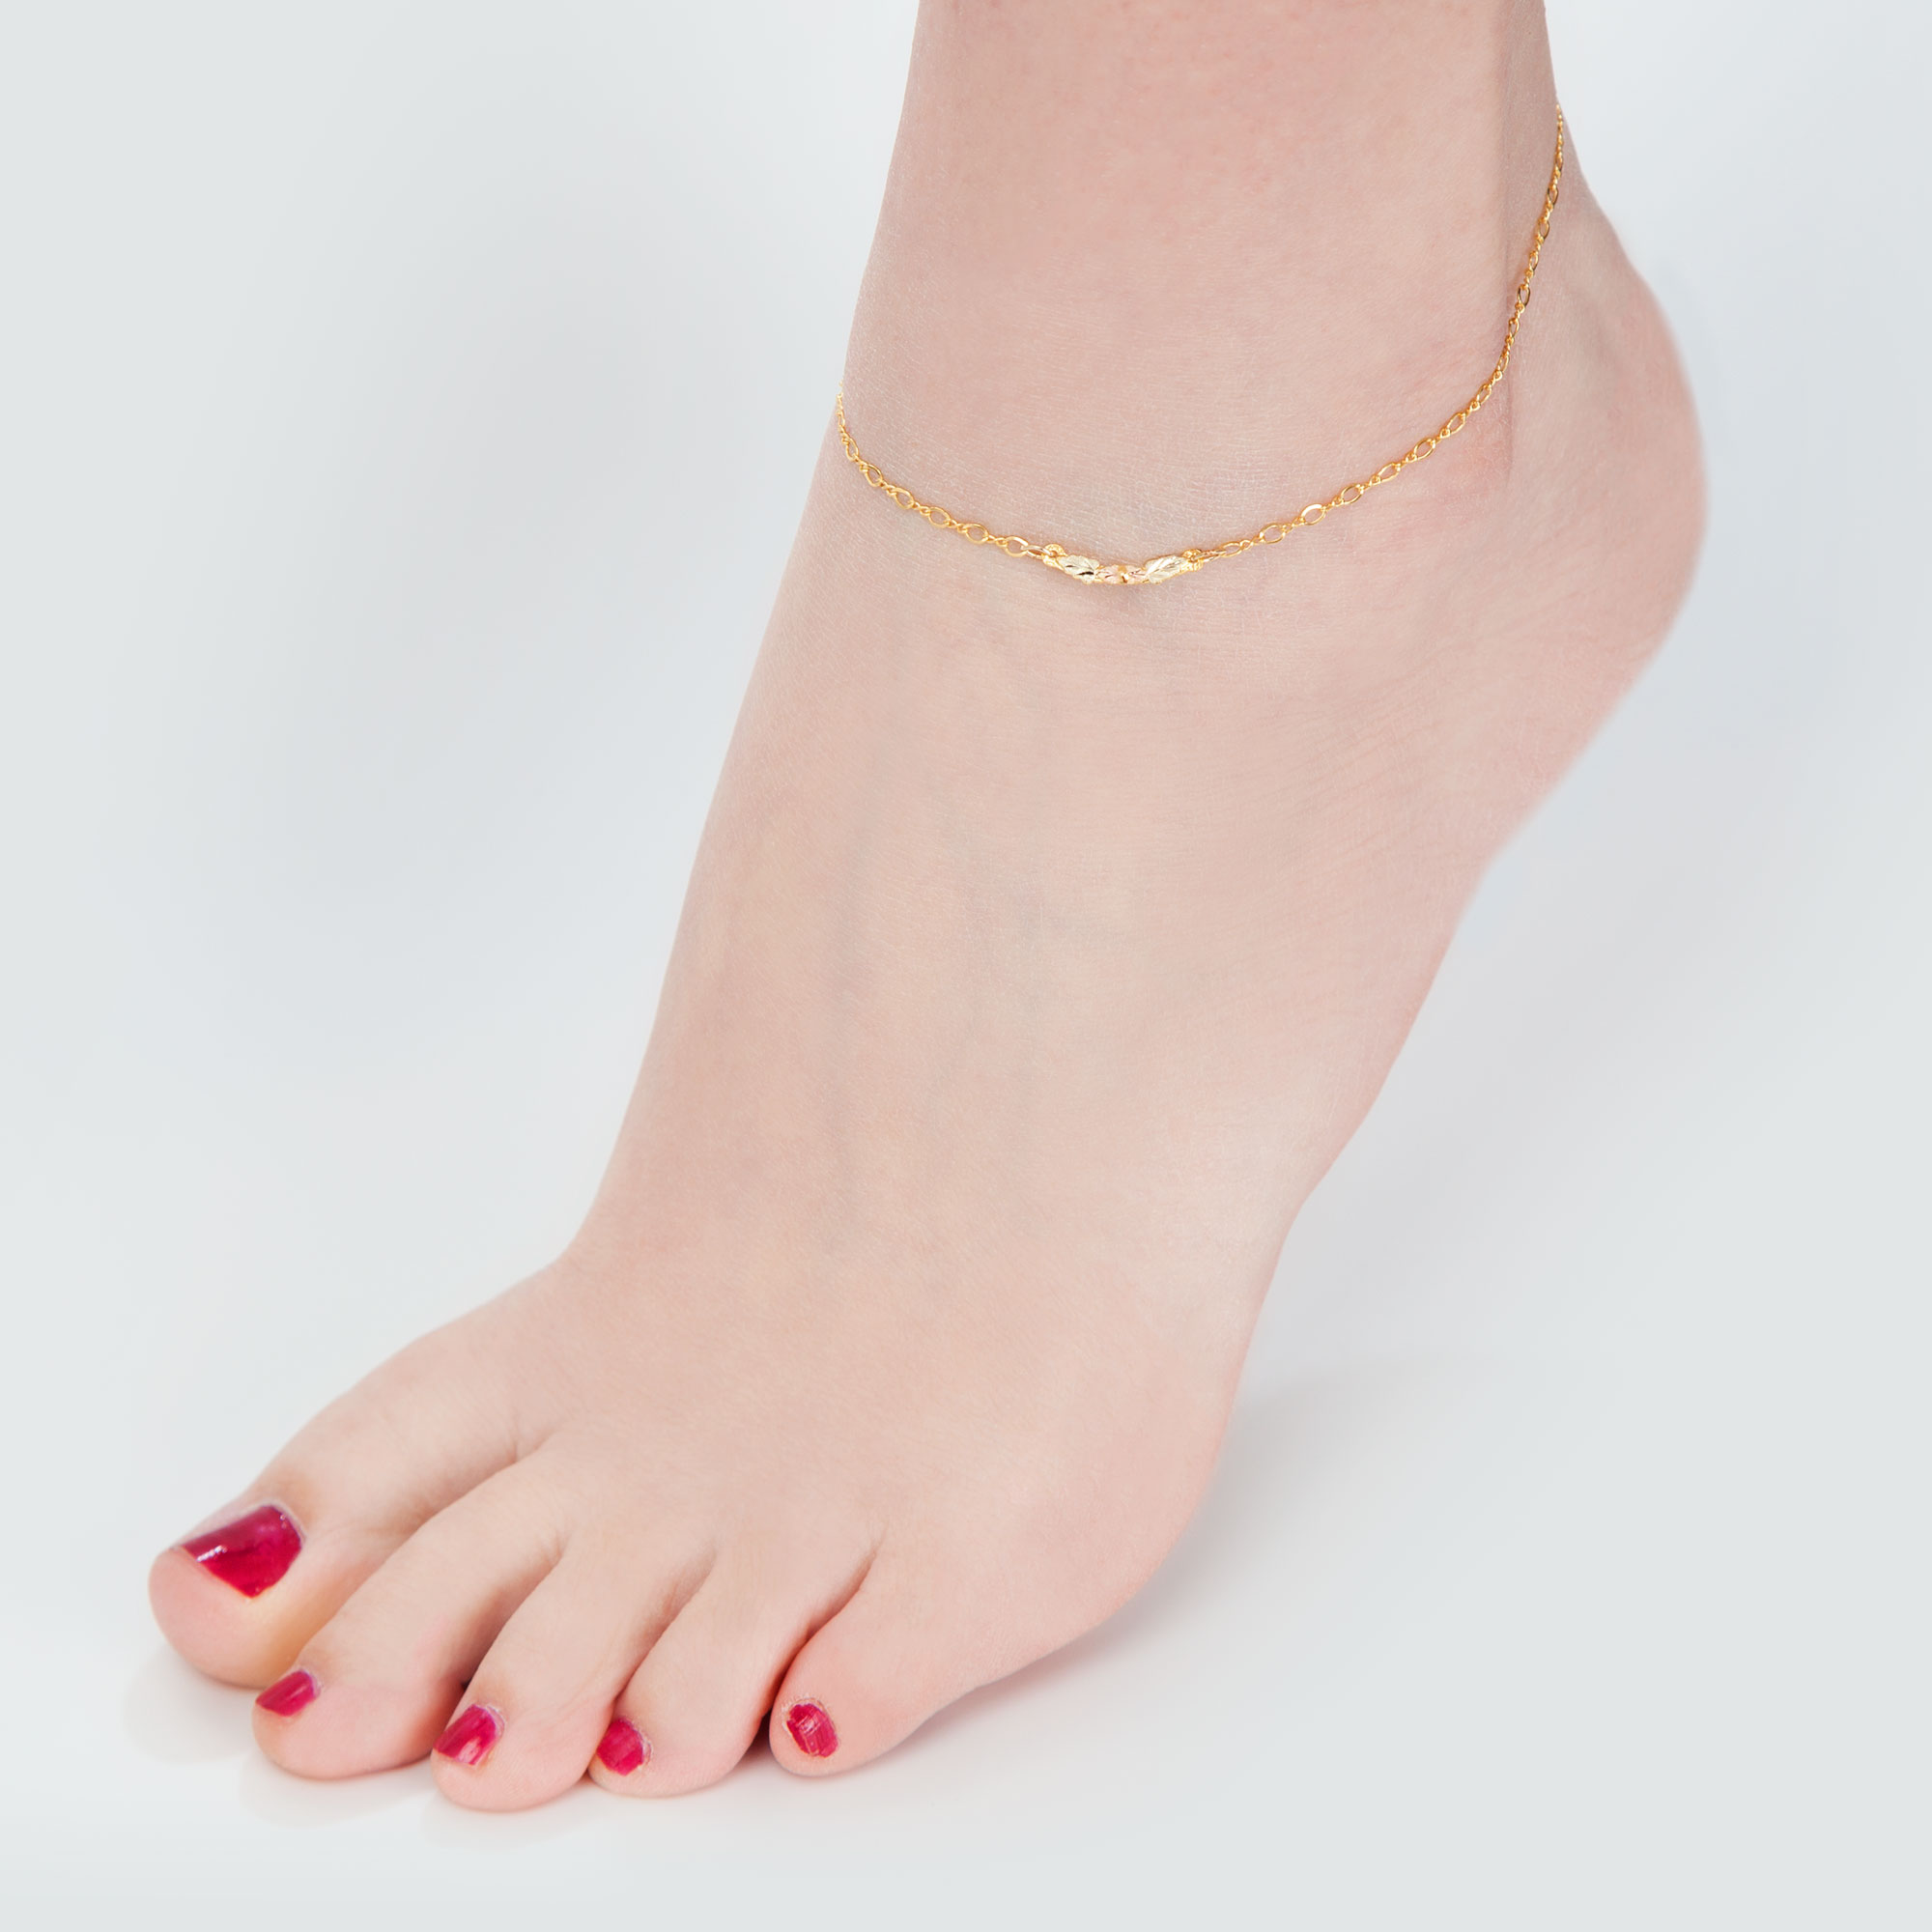 rings most toe best sandal matching florida jewelry ankle ring red and body for barefoot bracelet of popular unique bracelets anklet